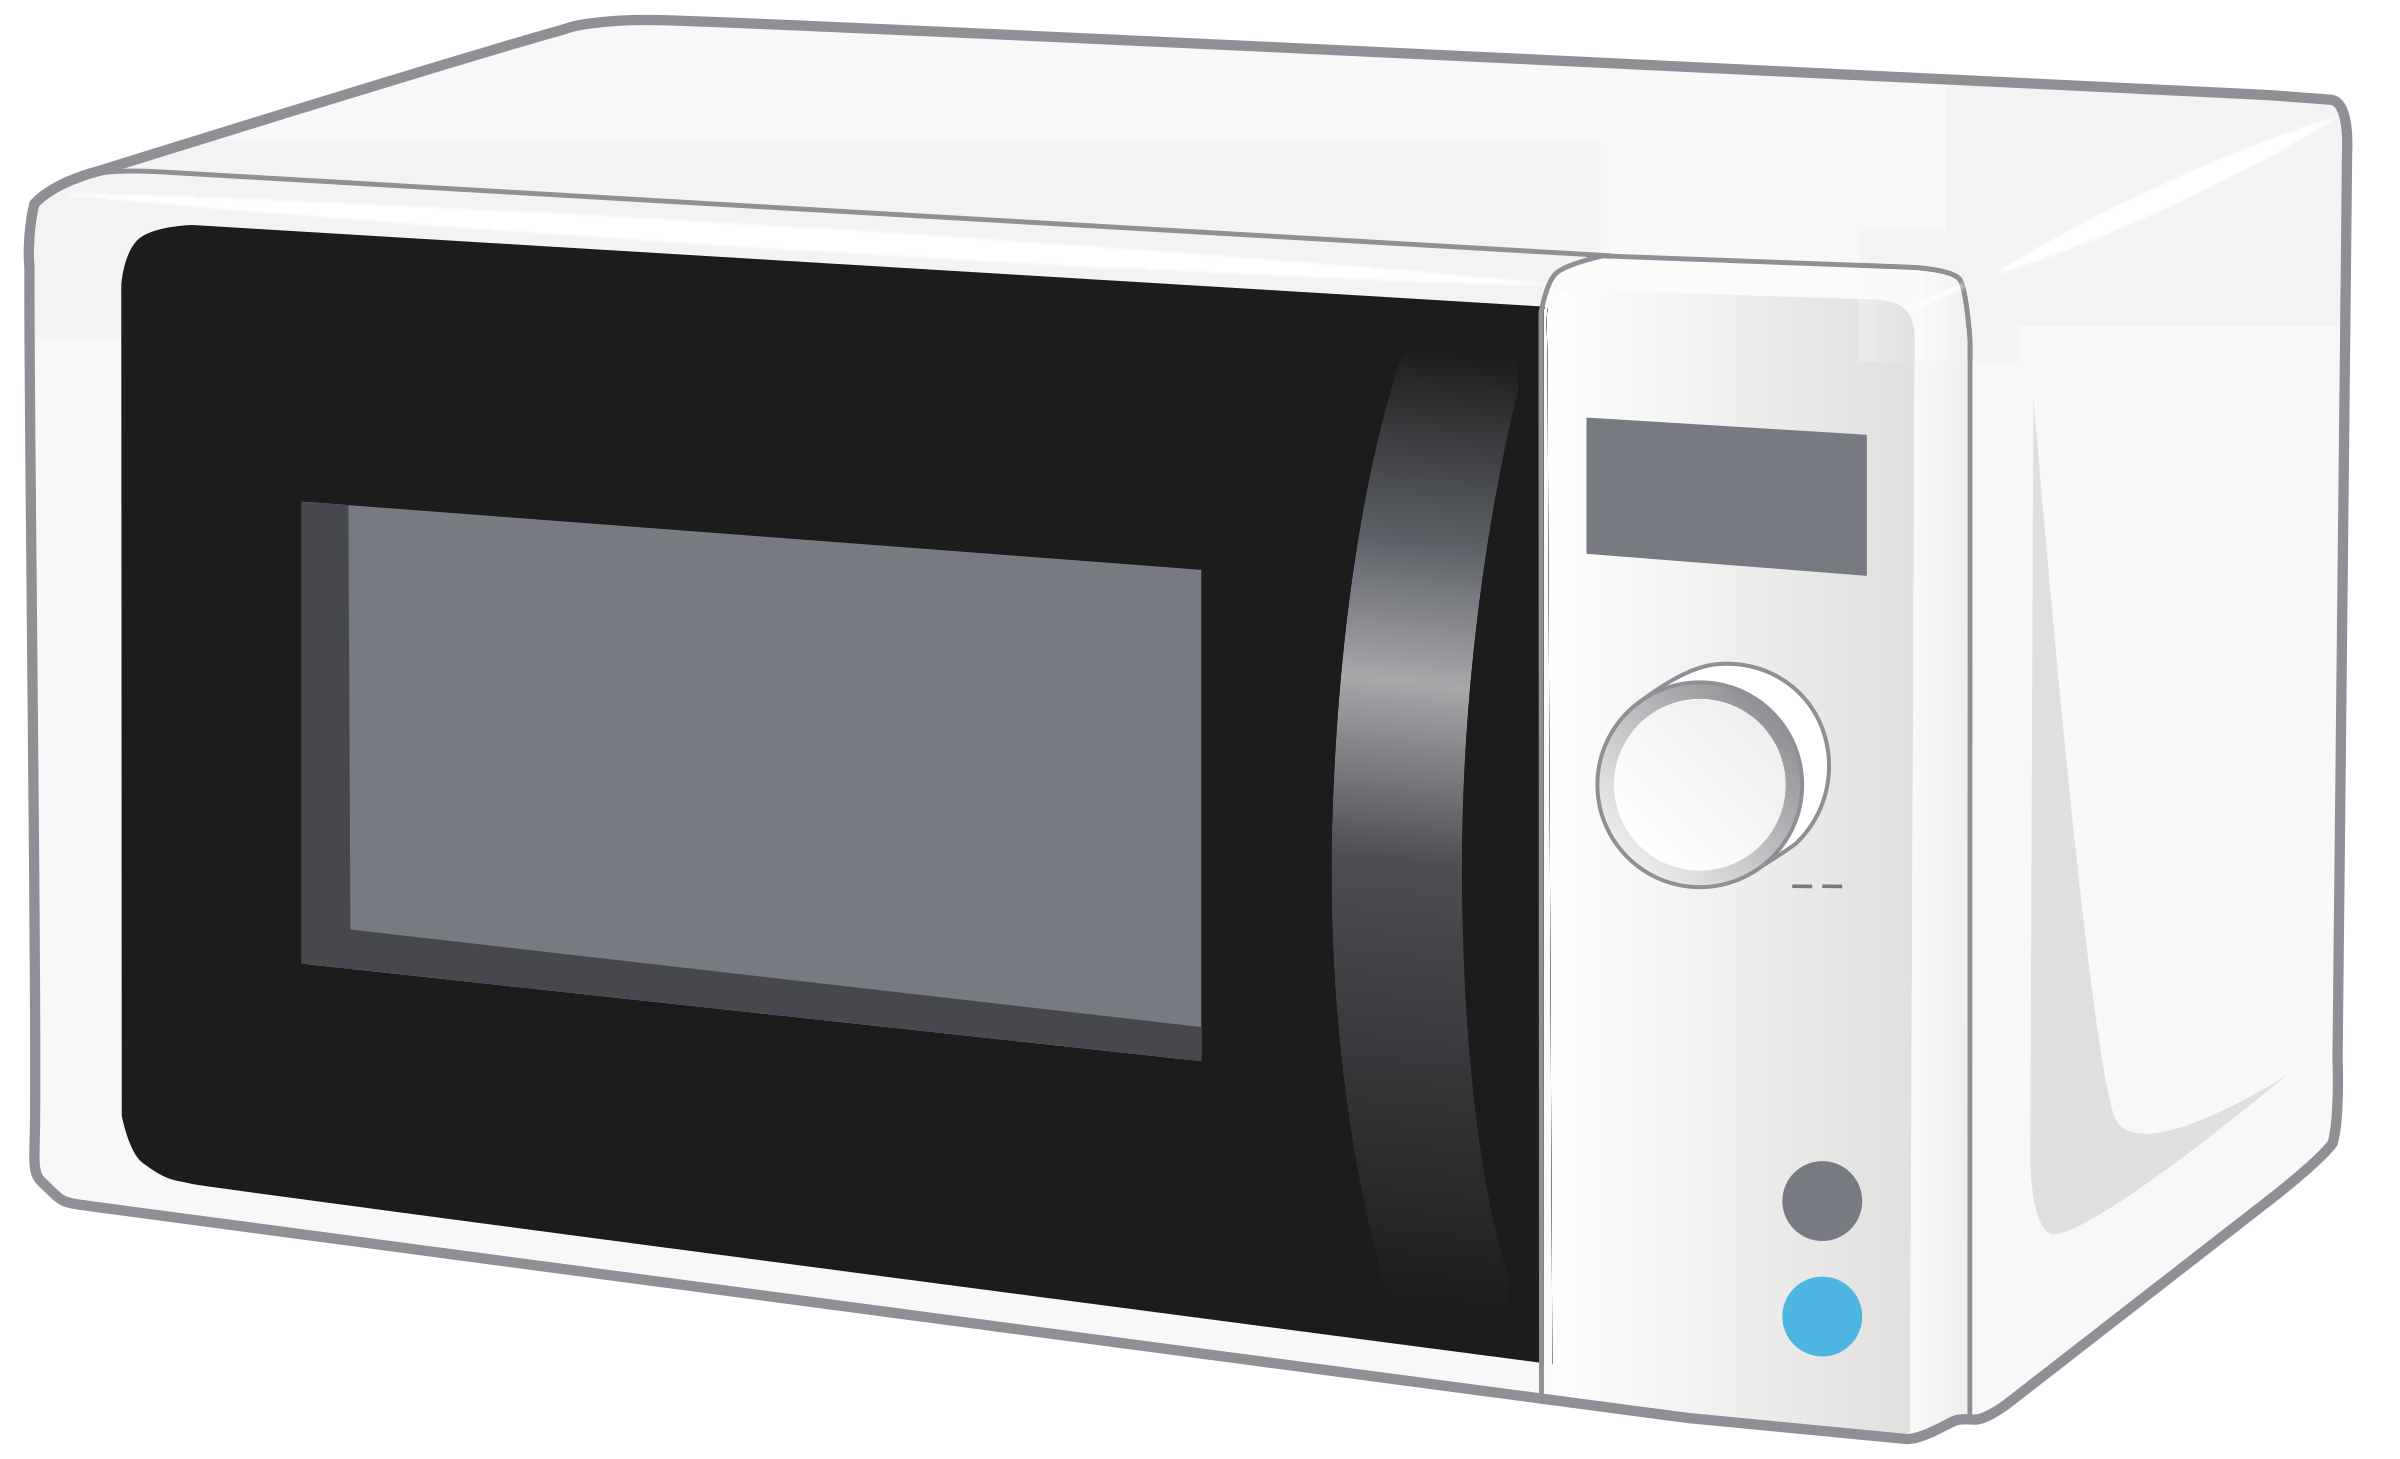 png black and white Microwave clipart pretty. Simple microvawe oven d.